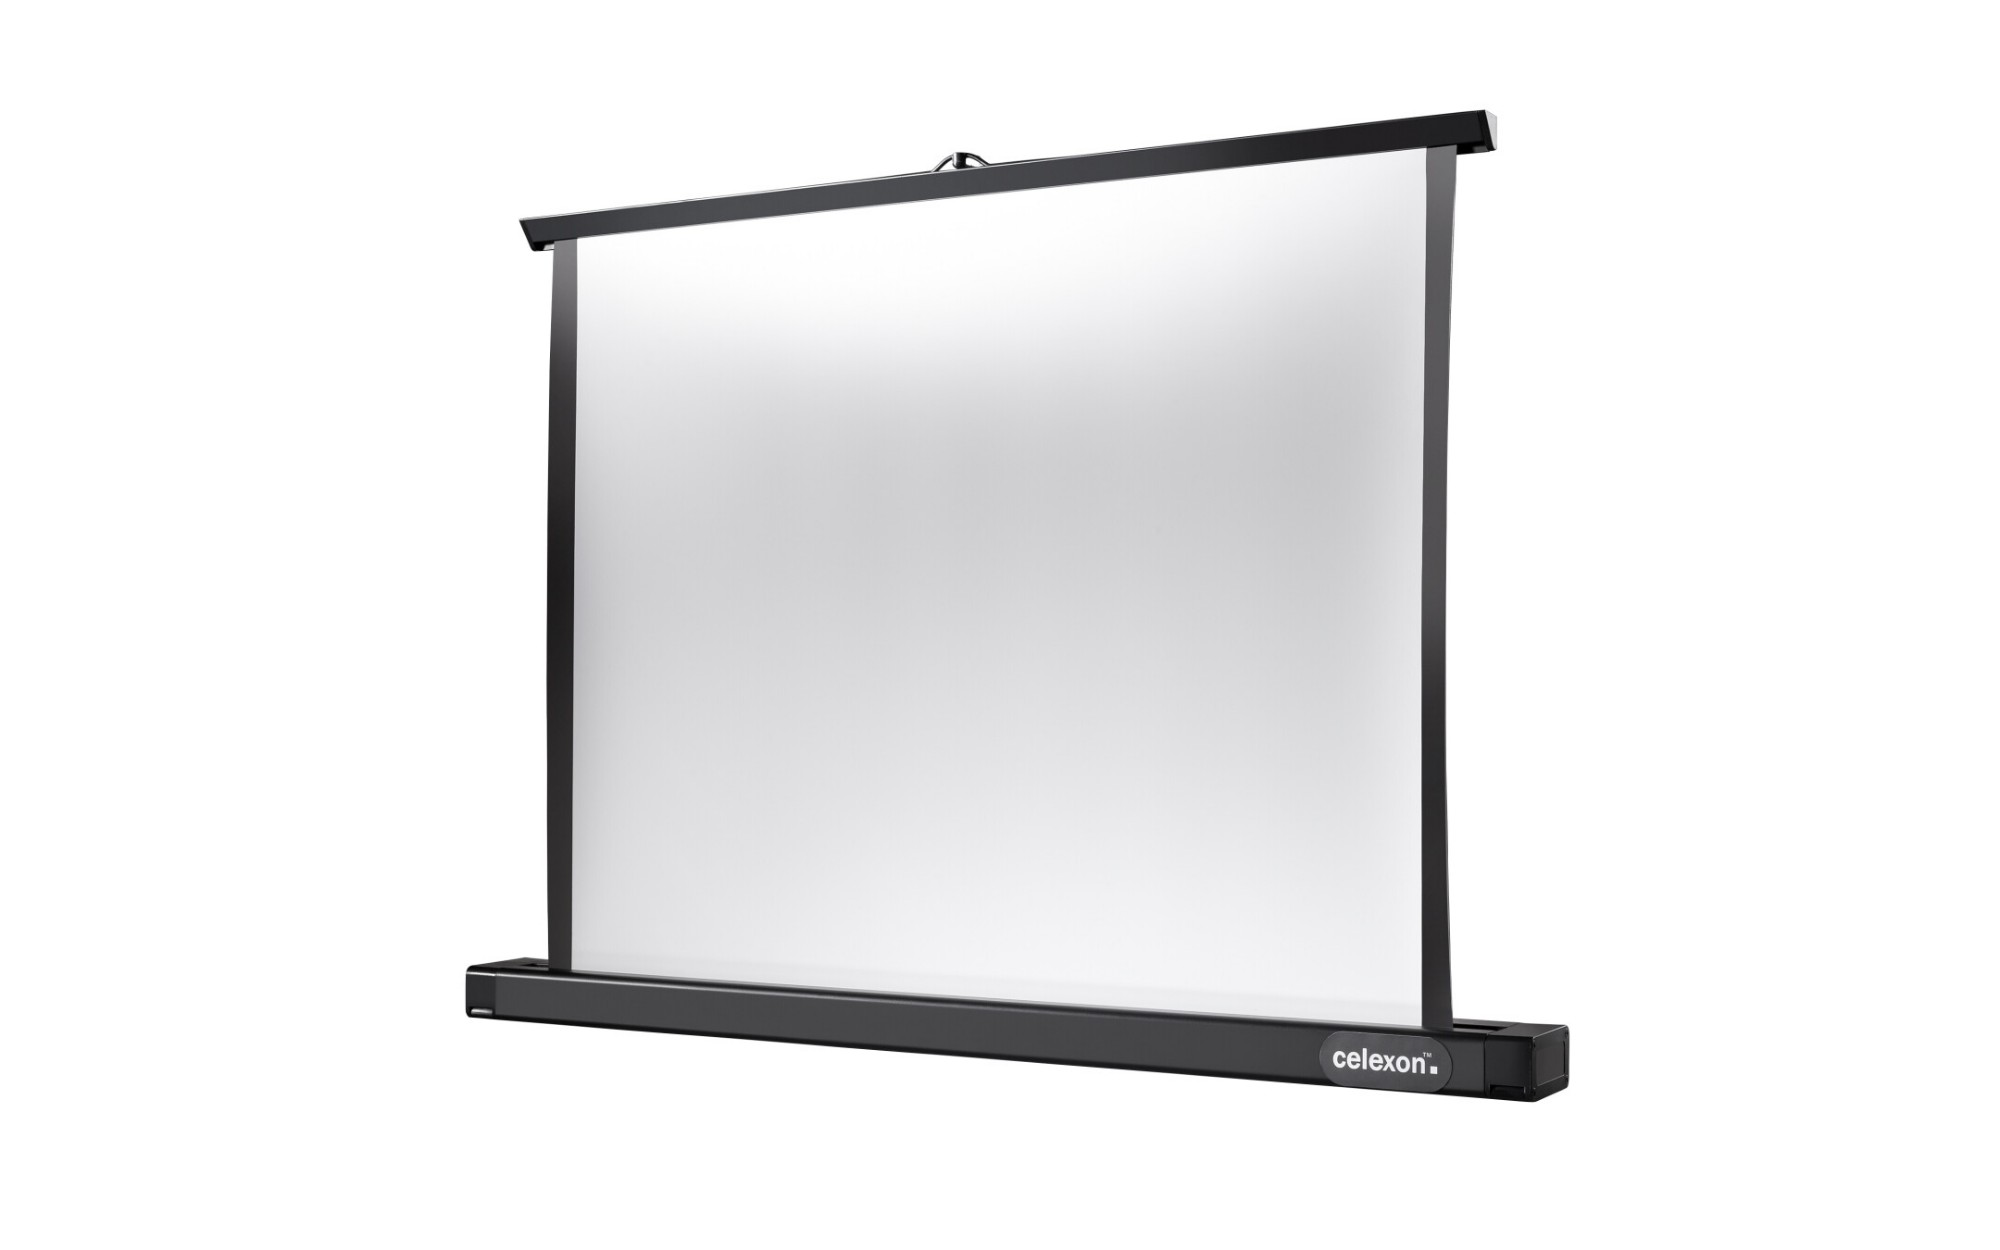 Celexon - Table Top Professional - 66cm x 37cm - Super Portable Projector Screen